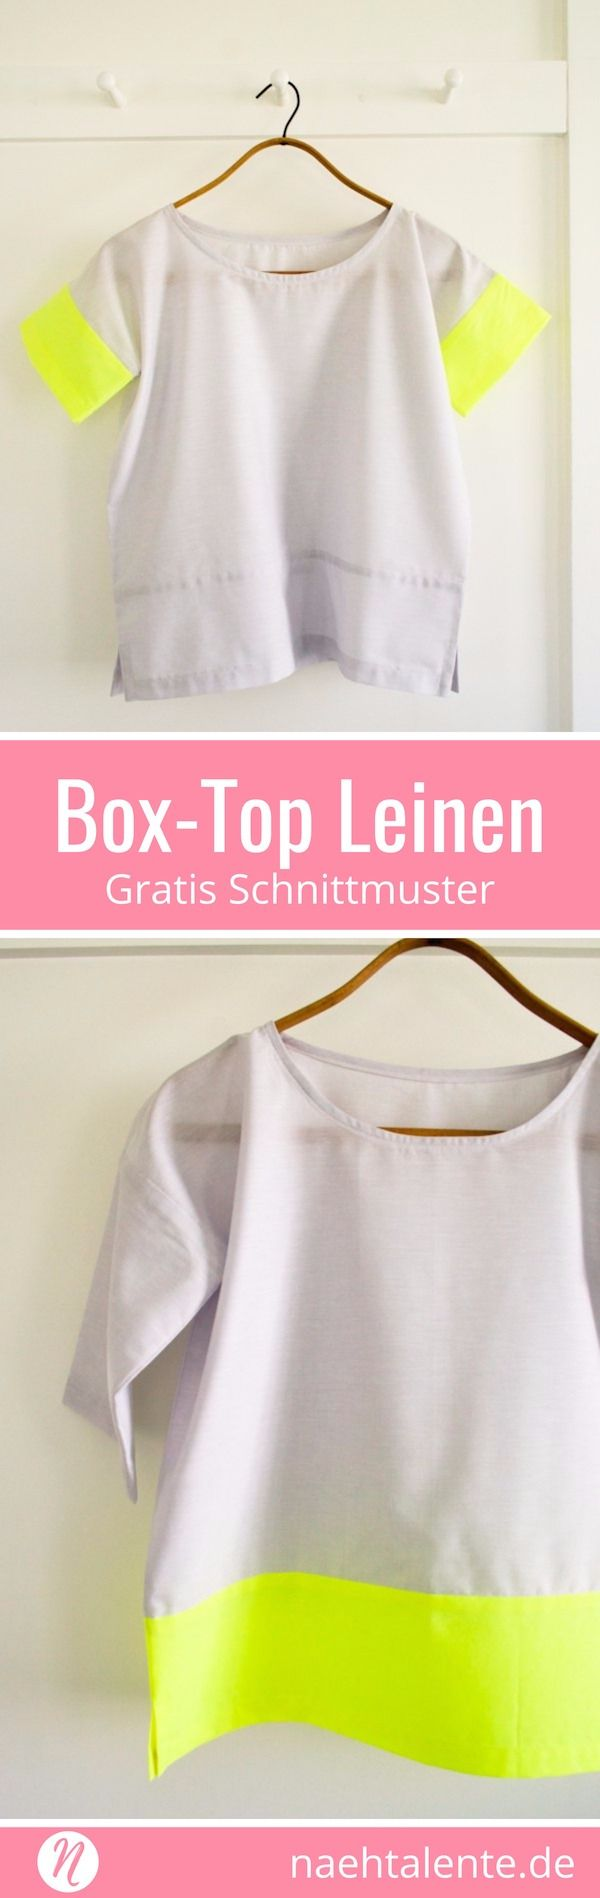 Einfaches Box-Top für Damen | Sewing patterns, Sewing projects and ...